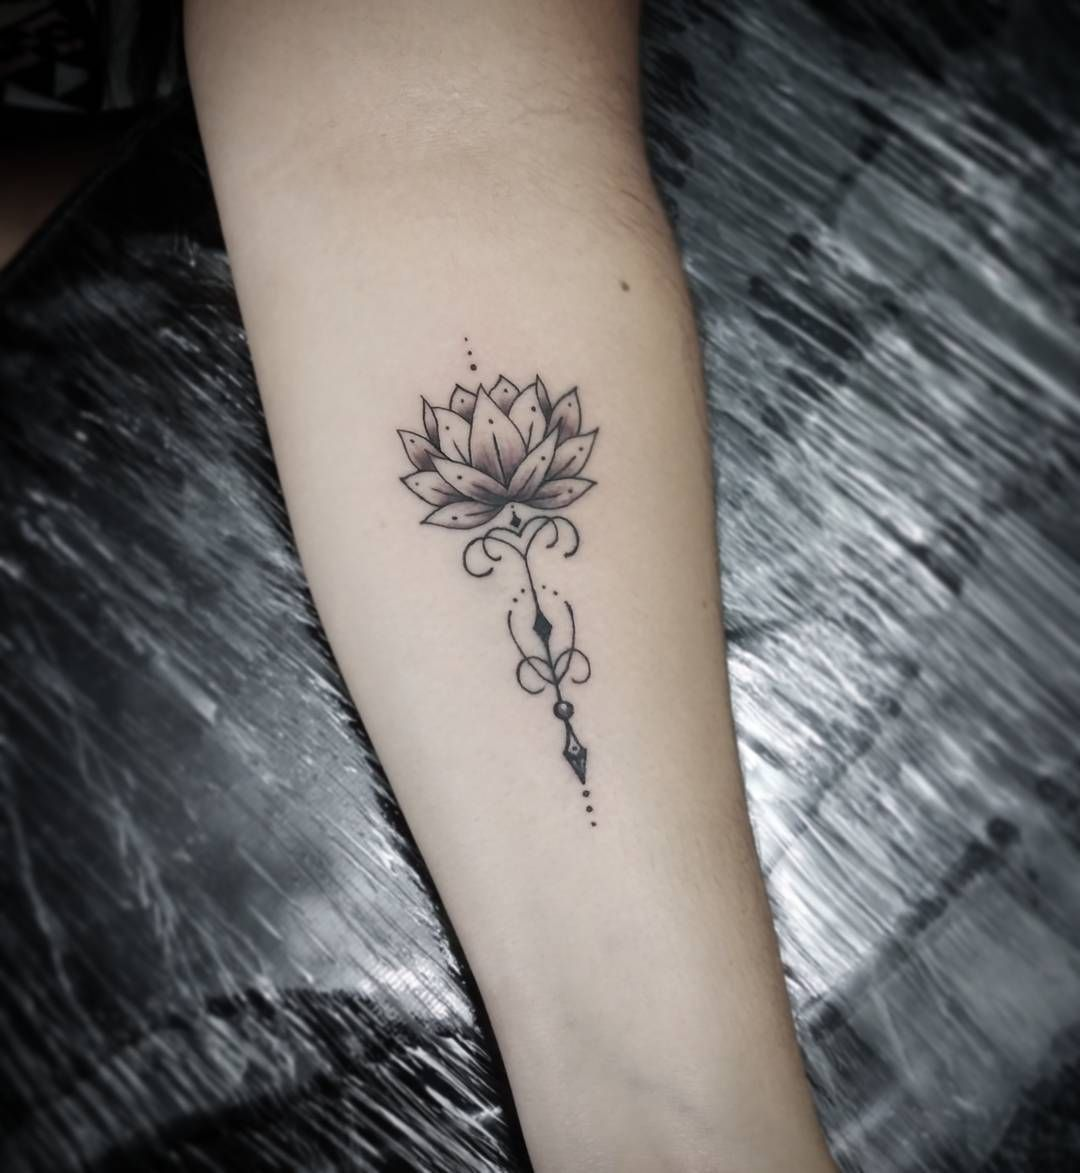 73 Likes 2 Comments Desiree John Miss Desijohn On Instagram So Proud Of My New Tattoo The Spiral M Tatuagens Tatuagem Flor De Lotus Mulheres Tatuadas